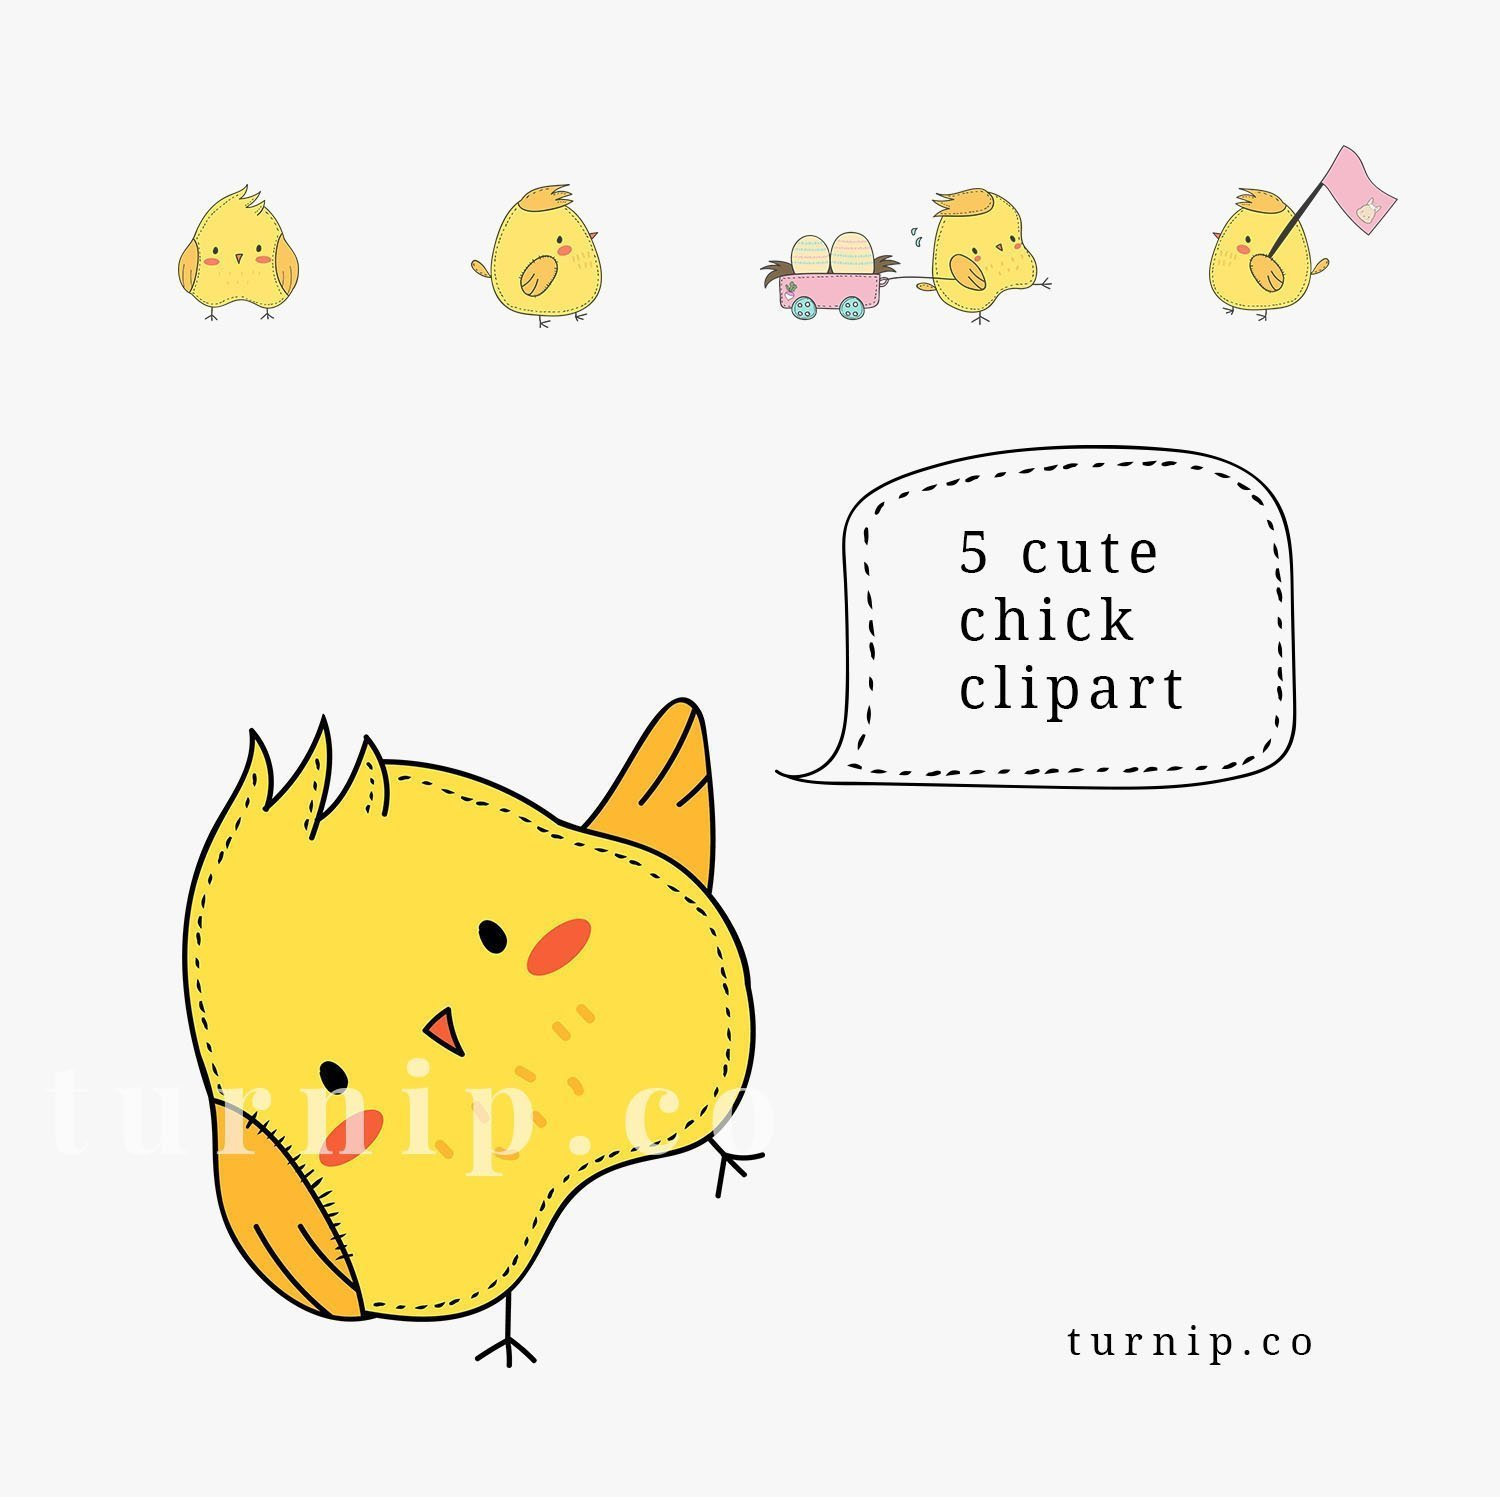 Cute Chick Clipart, Baby Chick Clipart, Easter Chick Clip Art, Yellow Chick  Clipart, Little Chick Clip Art, Commercial Use Clip Art.